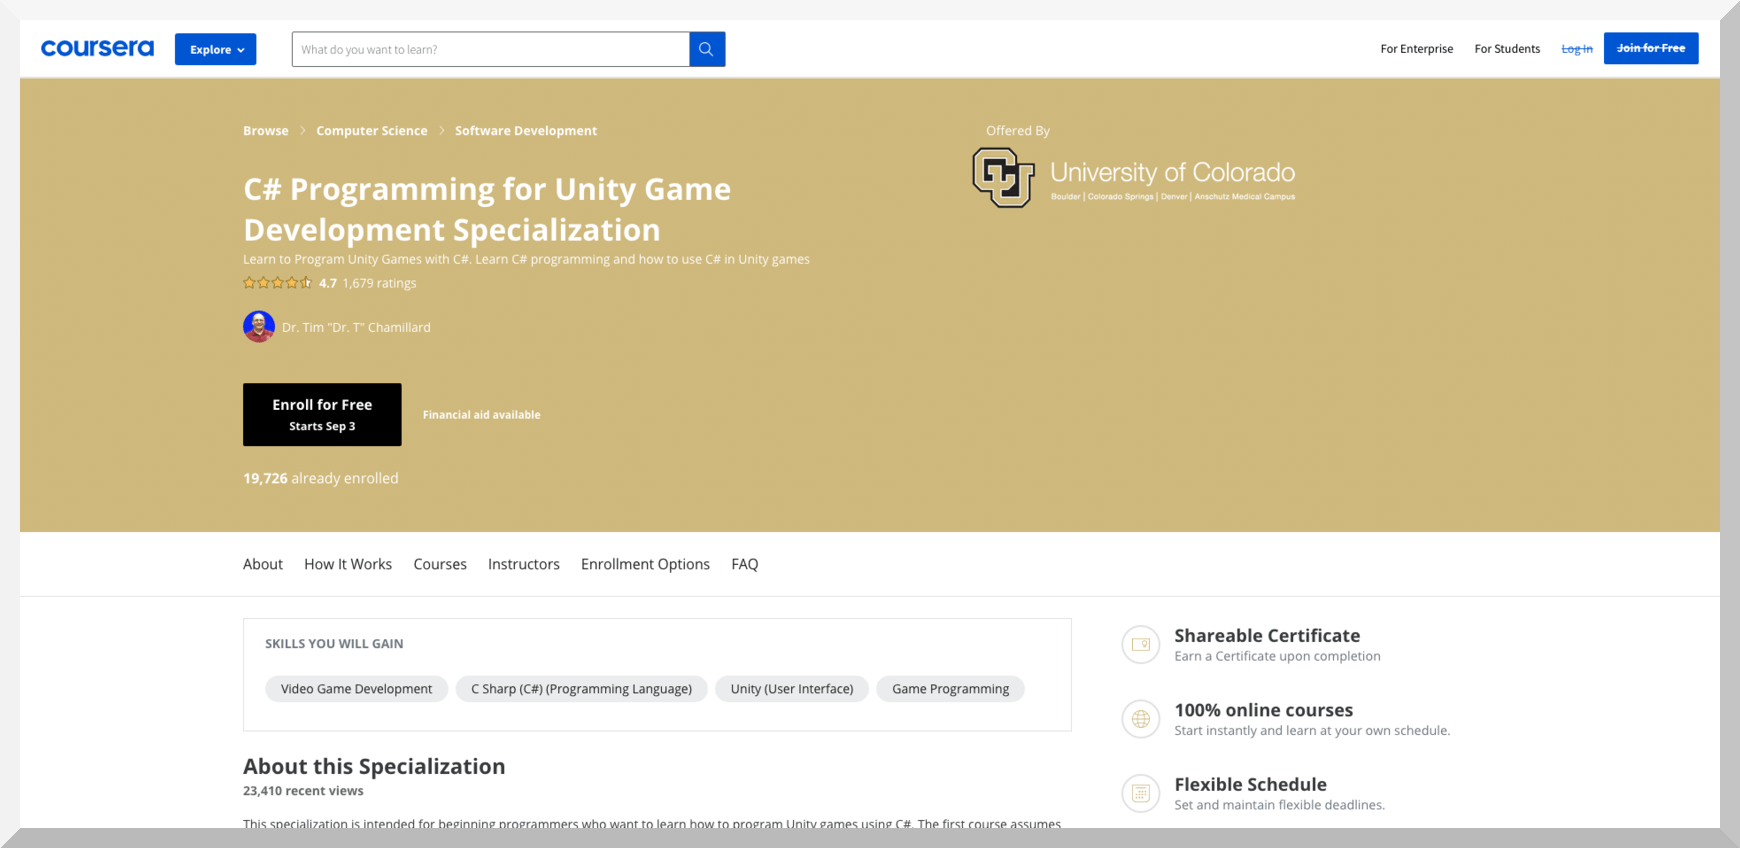 C# Programming for Unity Game Development Specialization by University of Colorado – Coursera